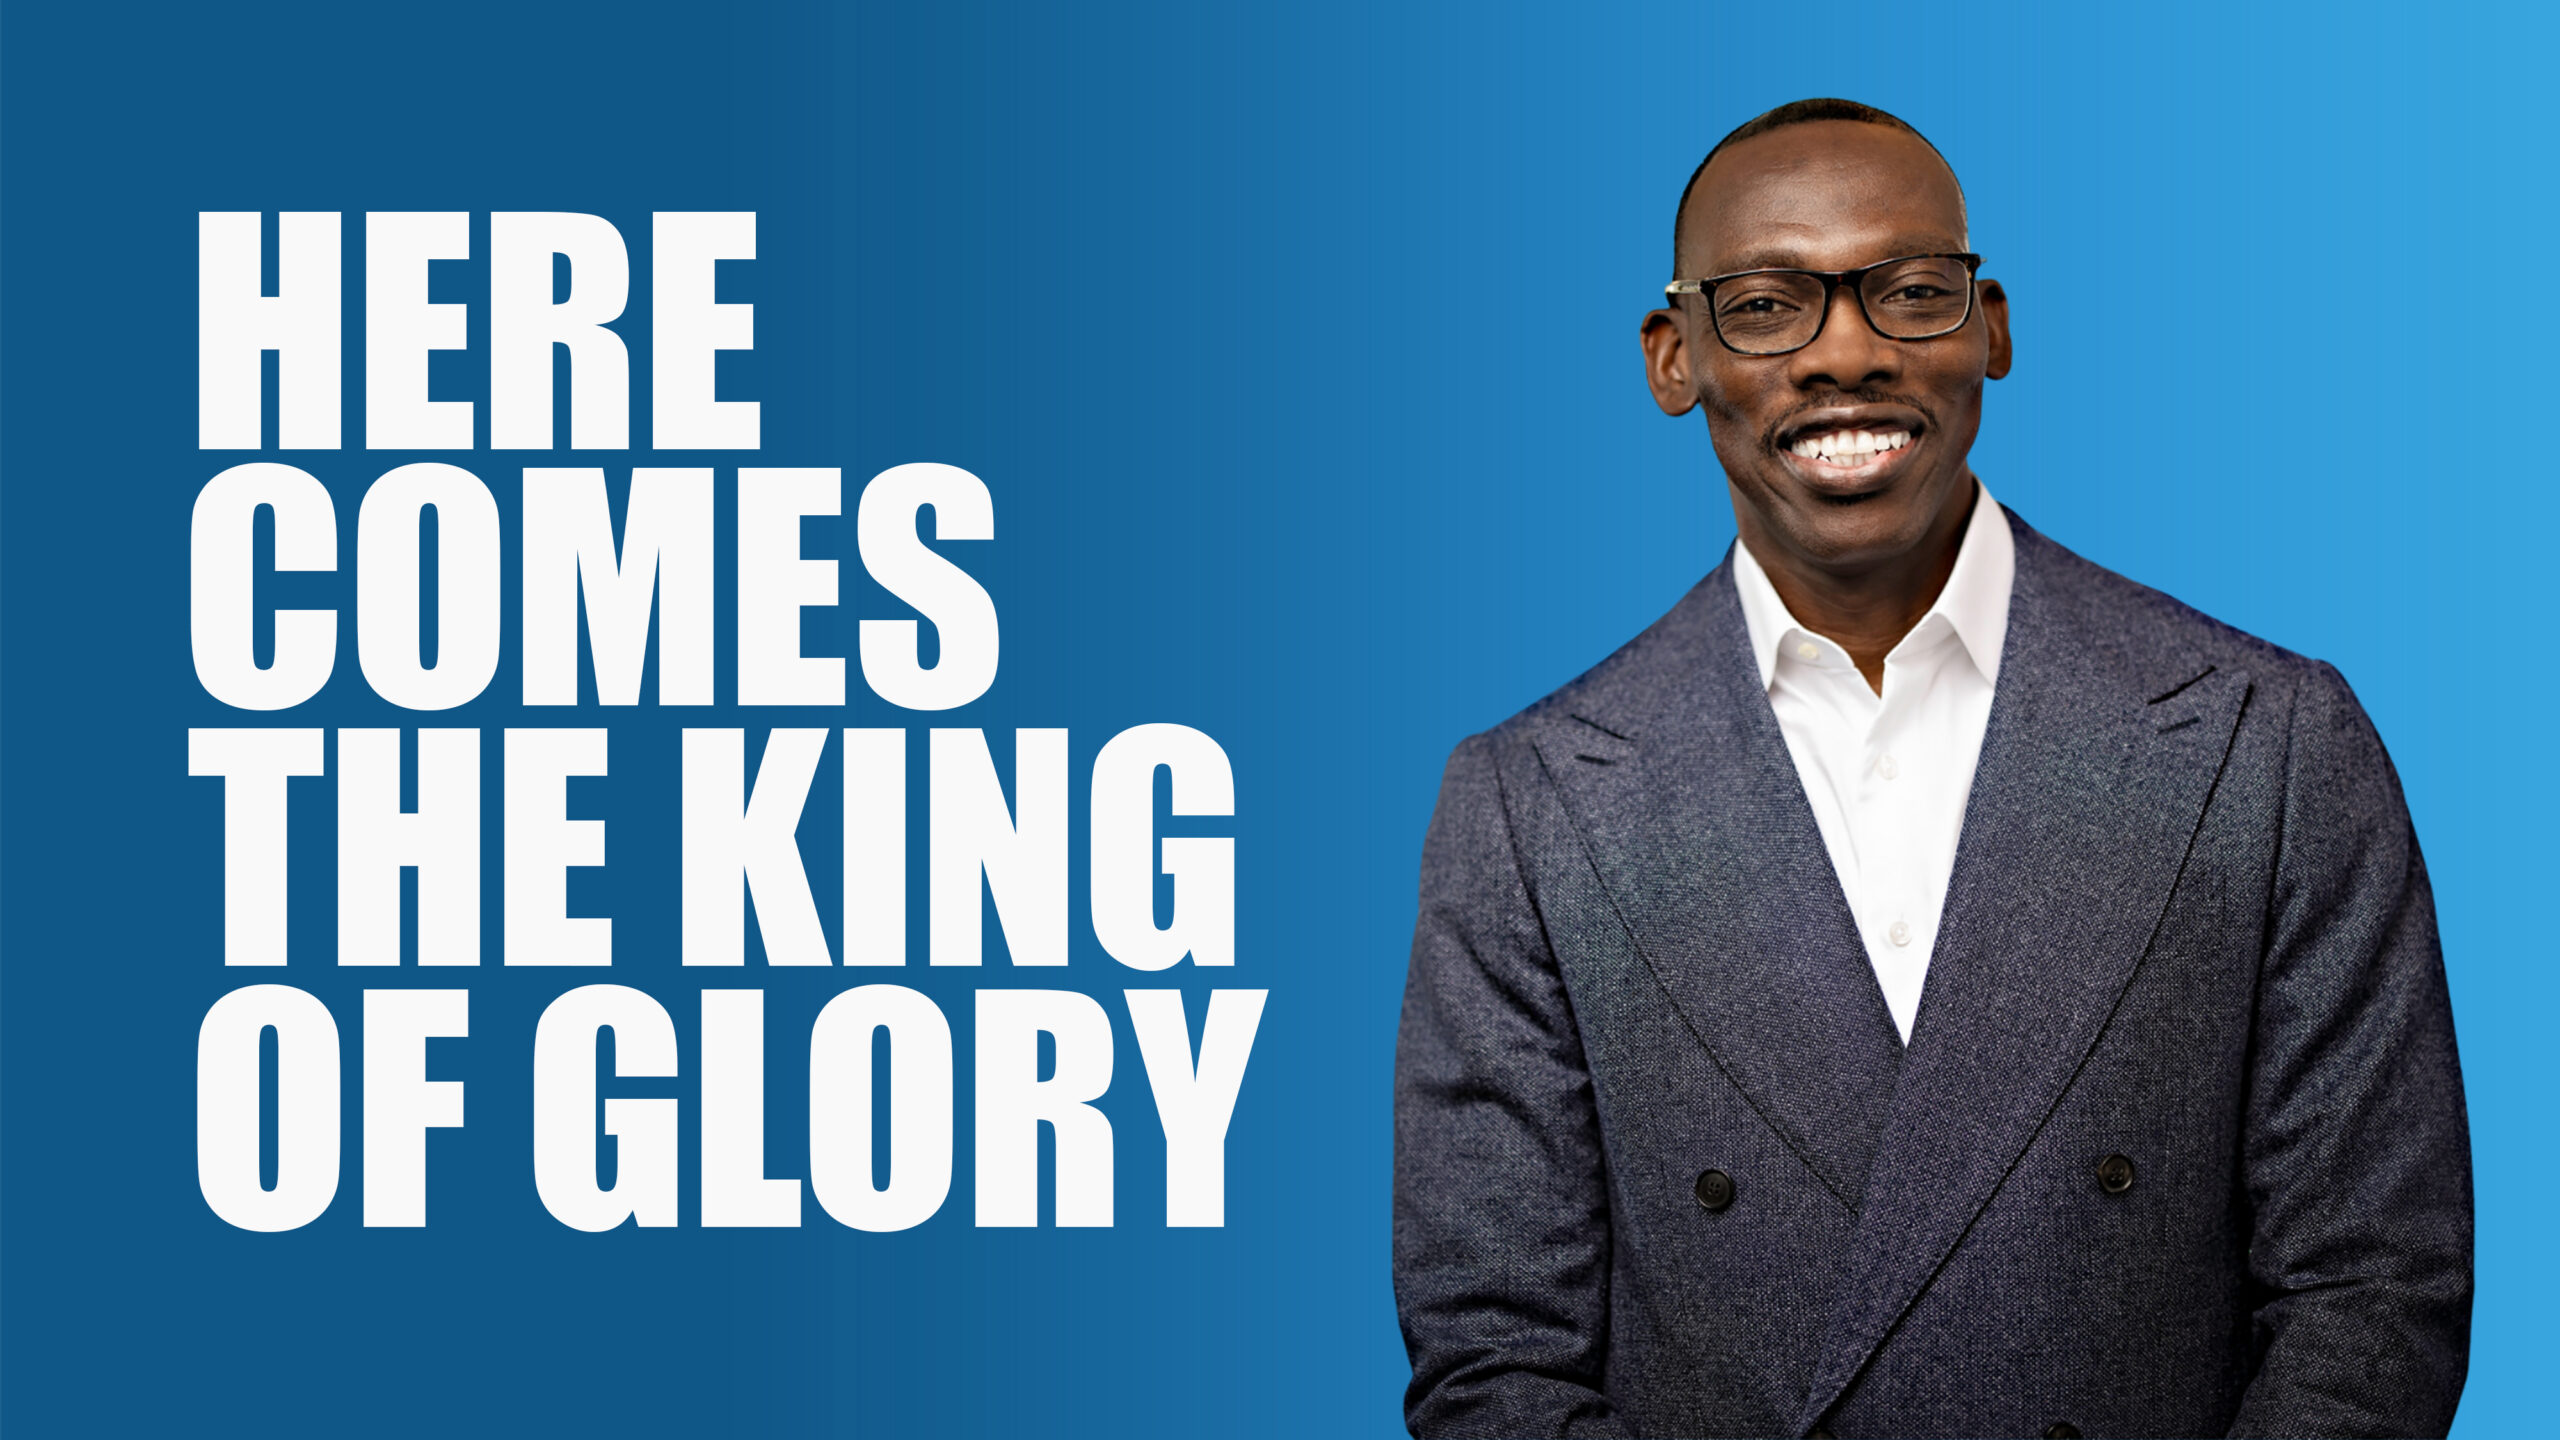 Here Comes The King Of Glory